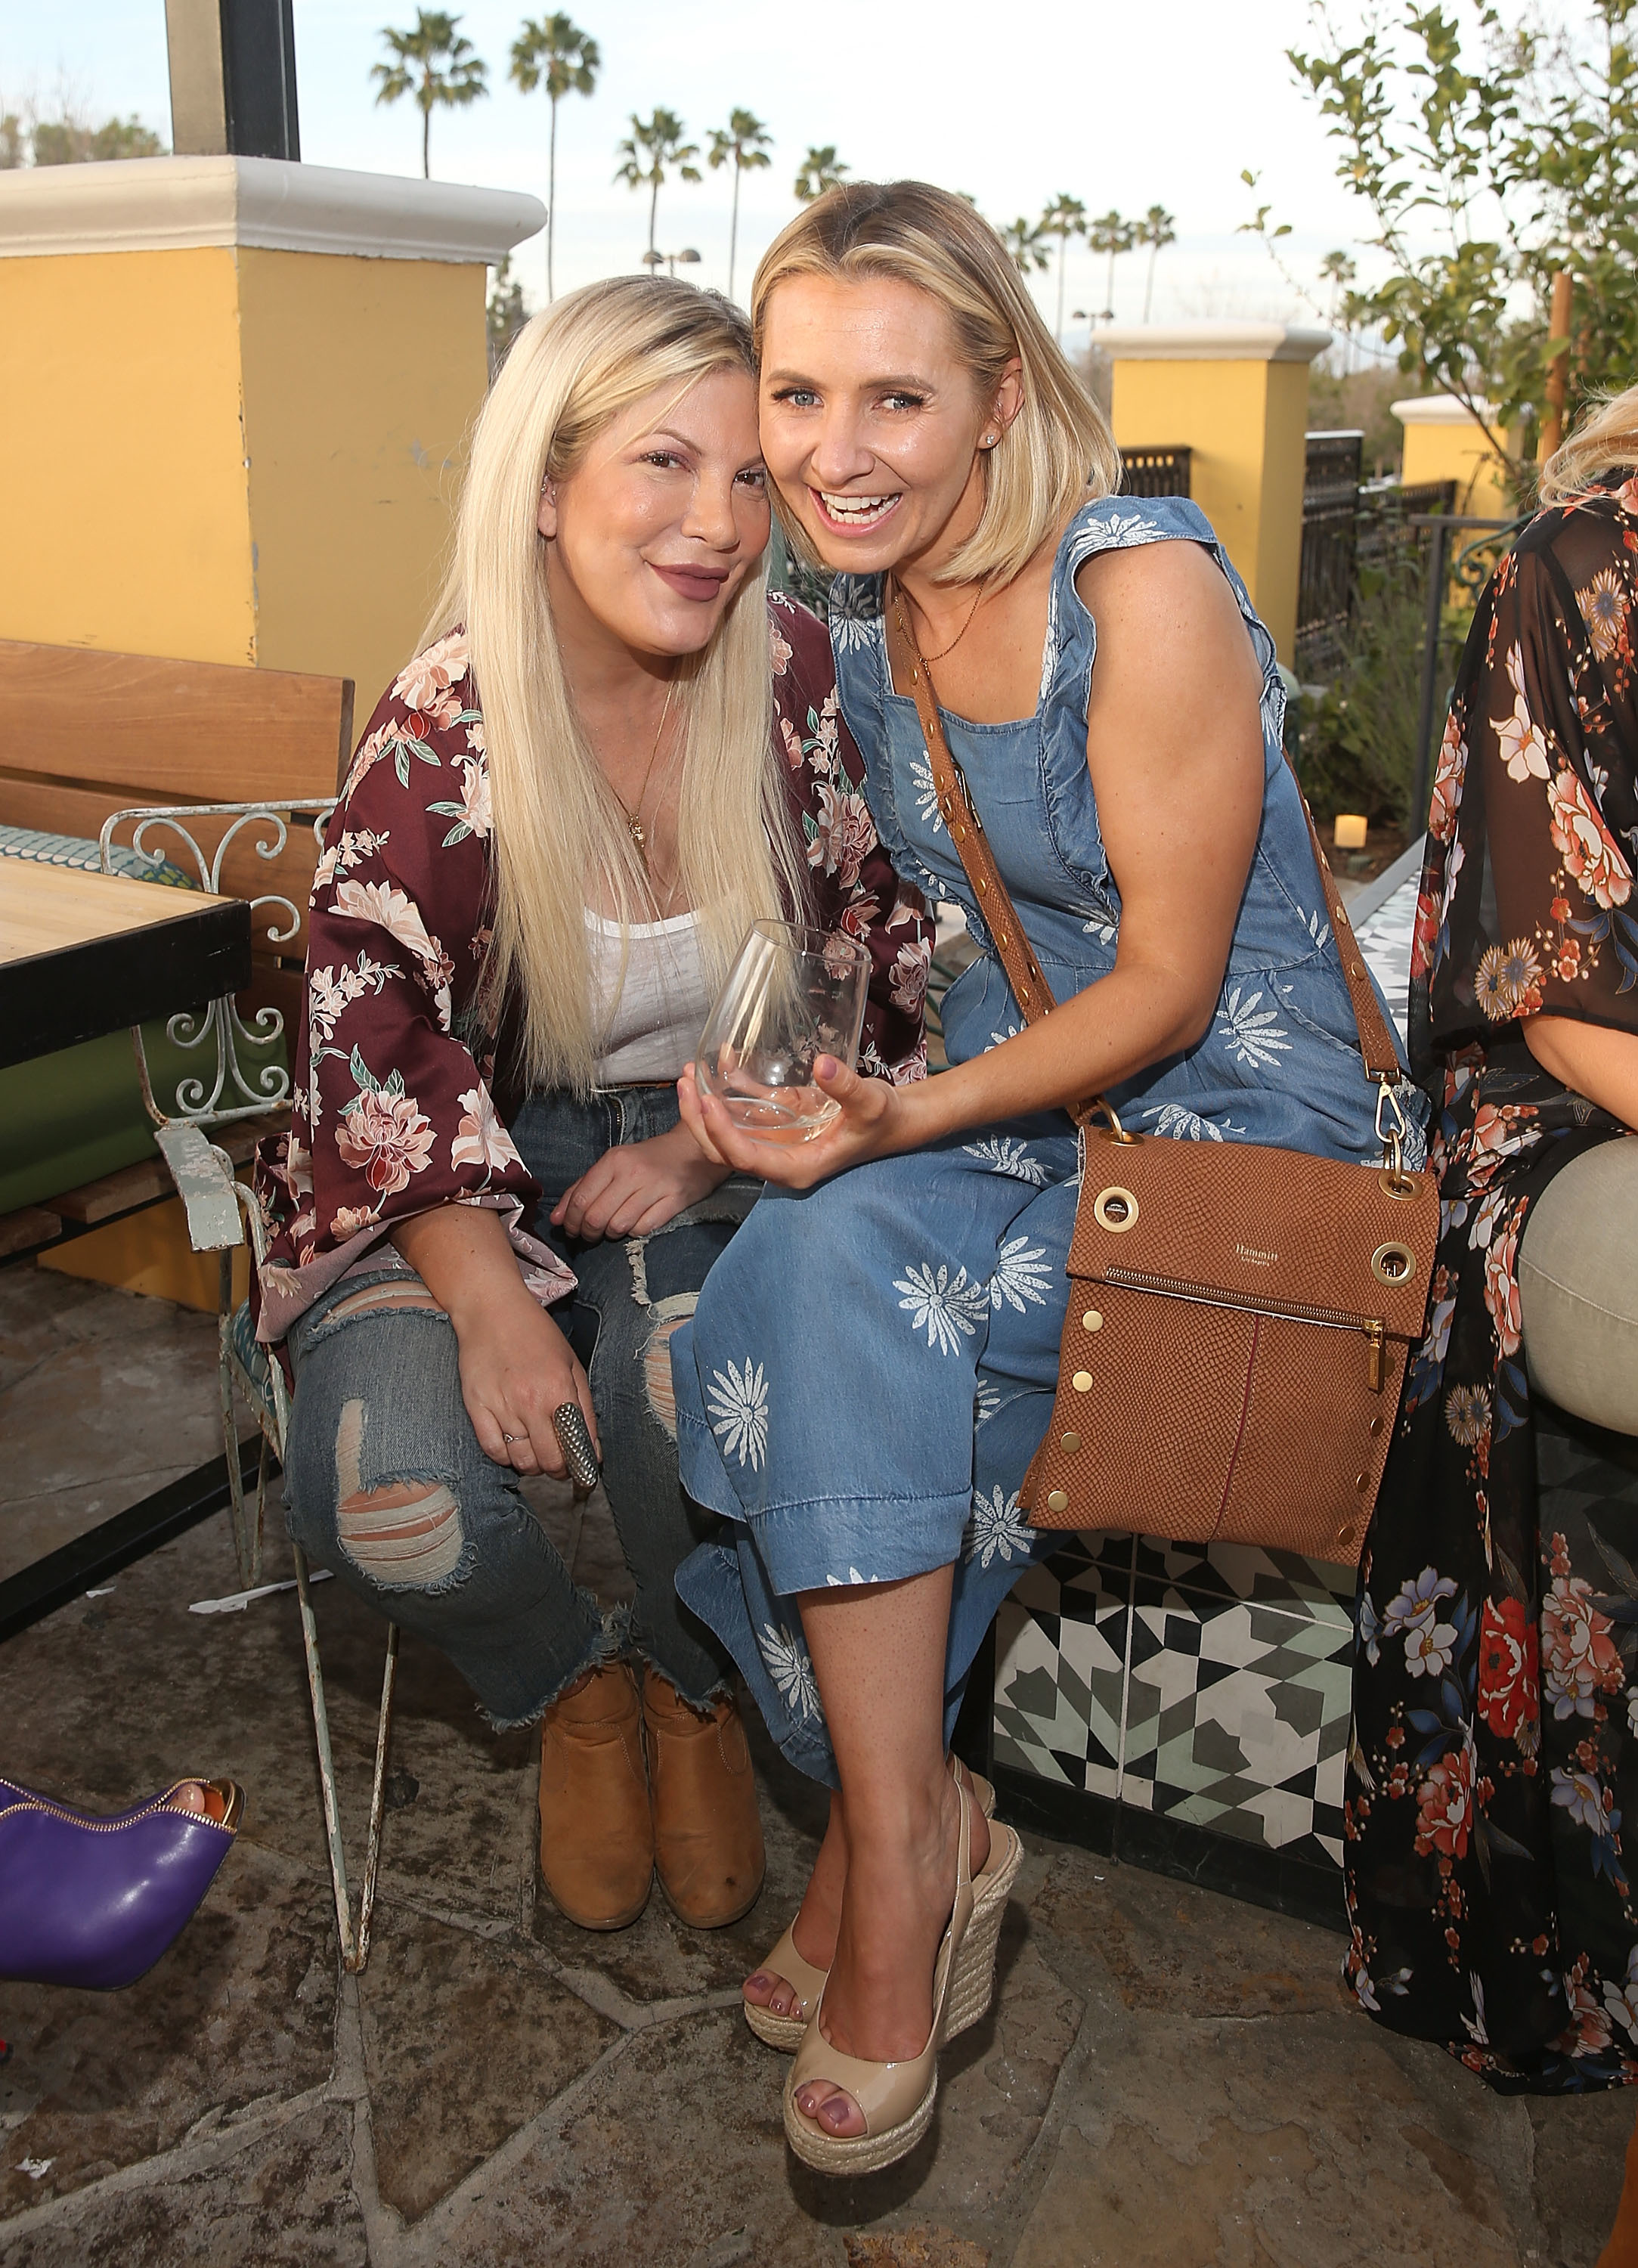 Tori Spelling and Beverley Mitchell attend The Millennial Mamas' Mom's Night Out at The Commons at Calabasas in Calabasas, California, on April 10, 2018.